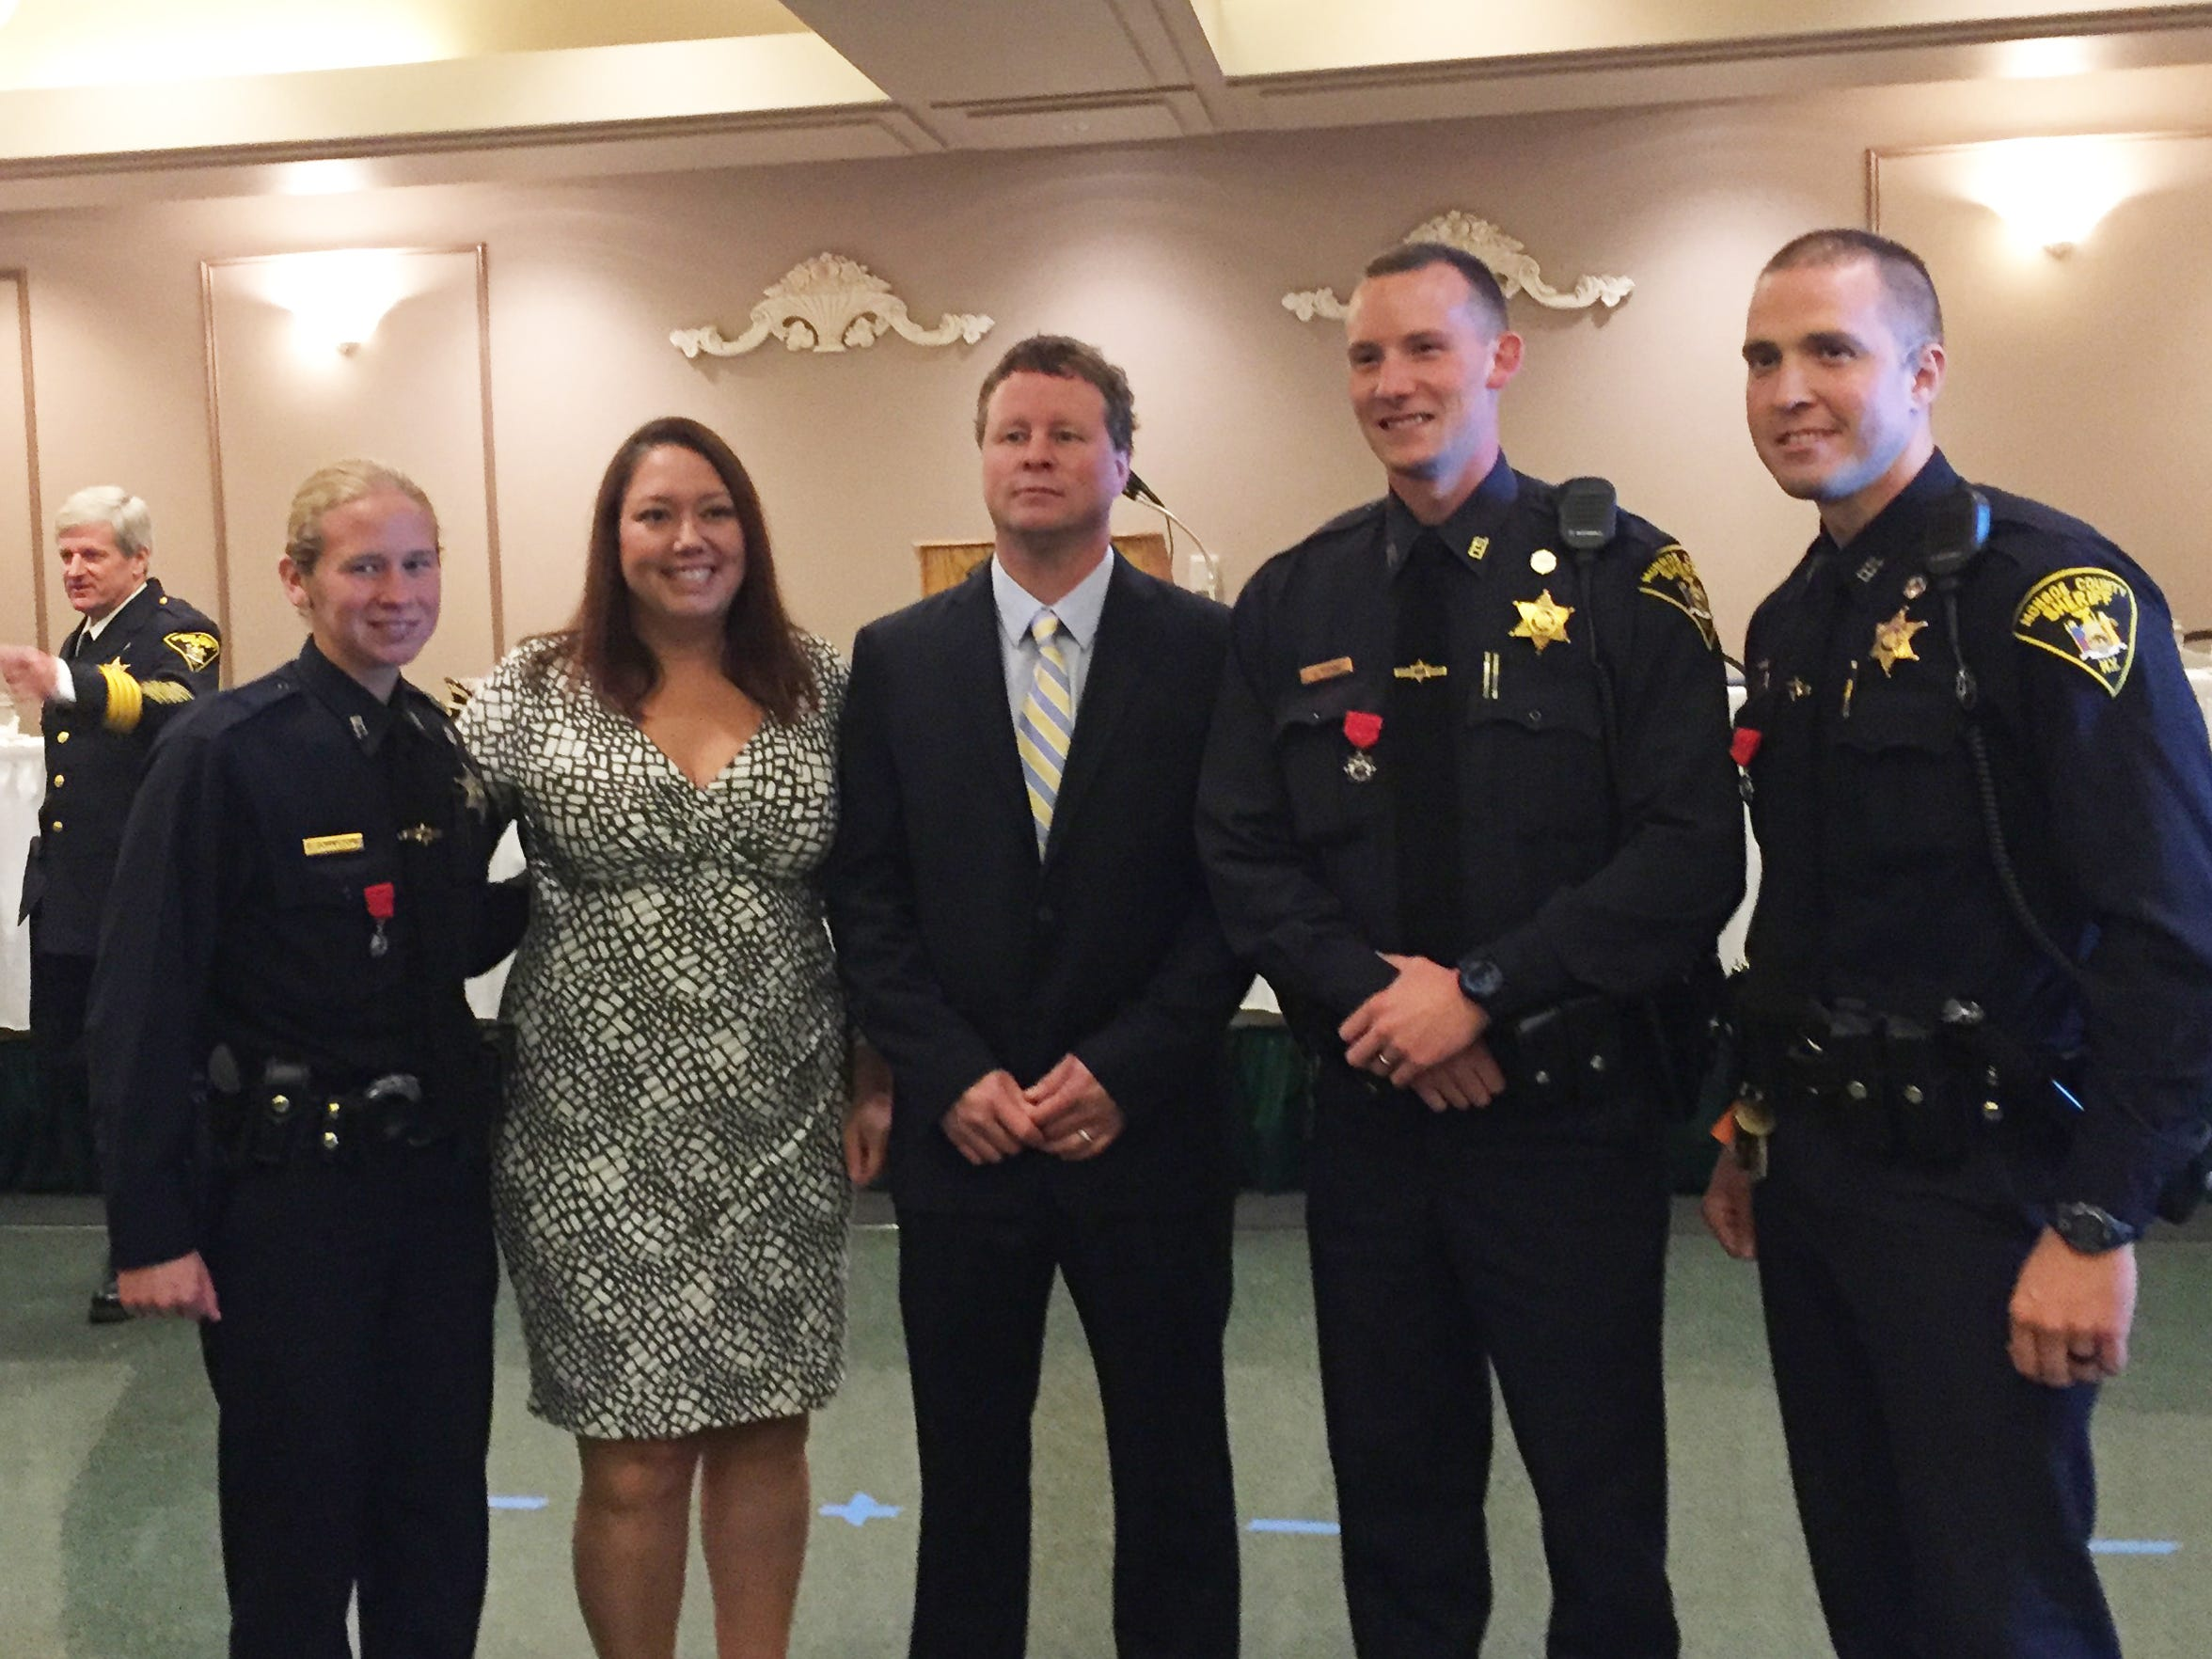 Aimee and Kevin Flannery flanked by Monroe County sheriff's